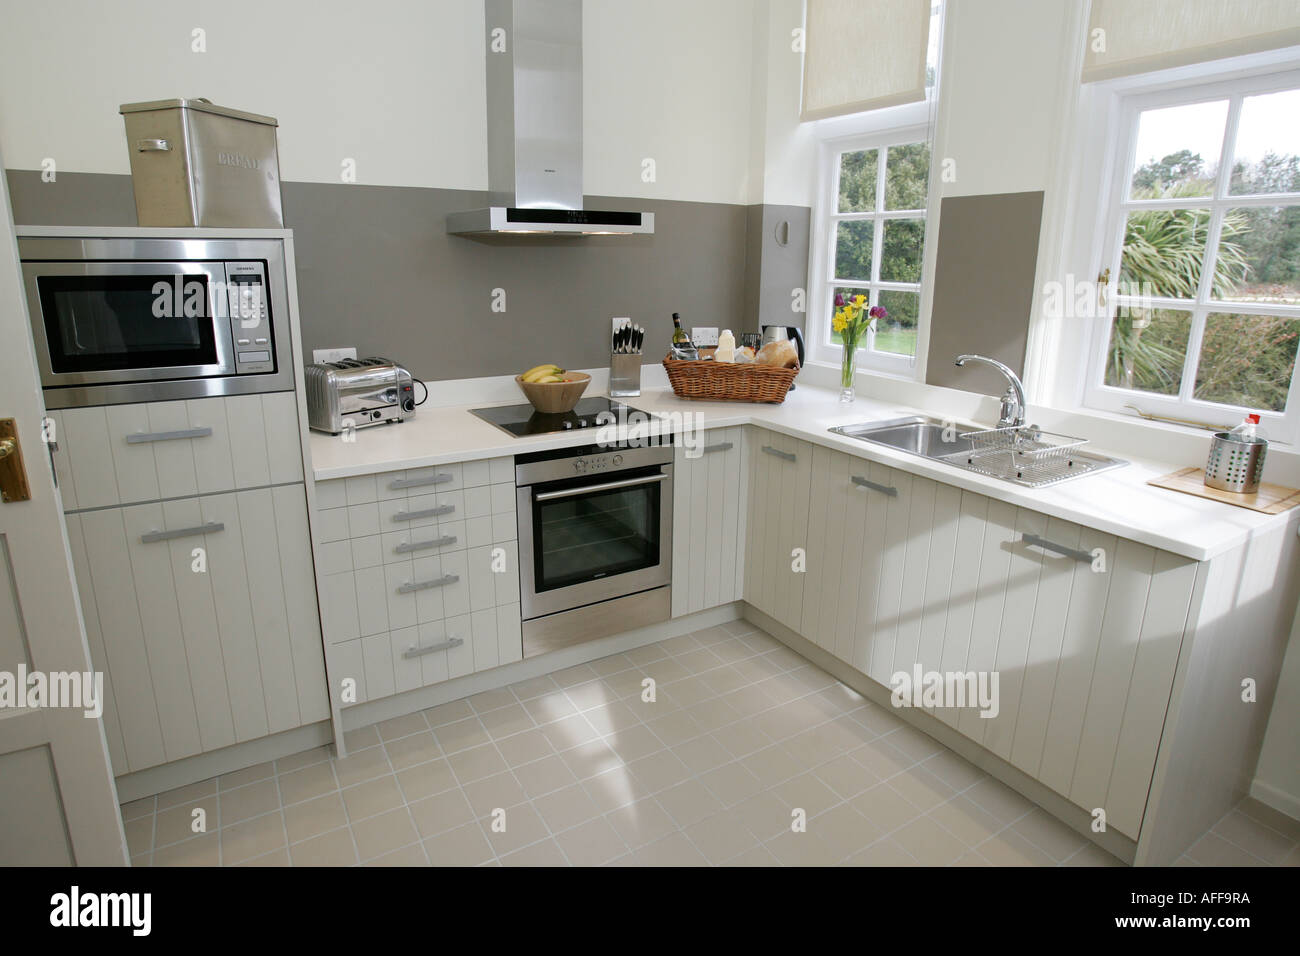 Contemporary White Shaker Kitchen light grey shaker kitchen with wooden benches google search